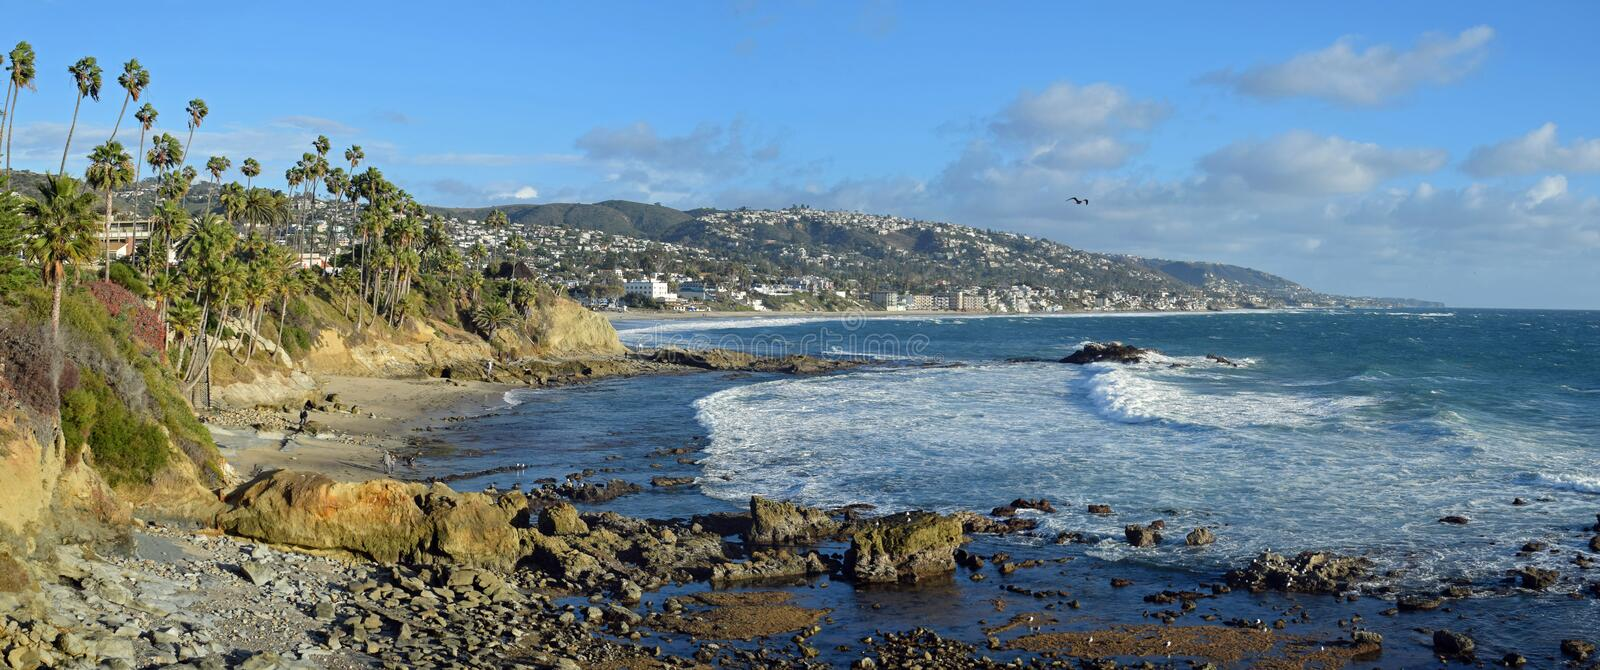 Winter storm at Rock Pile Beach in Laguna Beach, California. Panorama image shows conditions after the passaage of a winter storm at Rock Pile Beach in Laguna stock photography